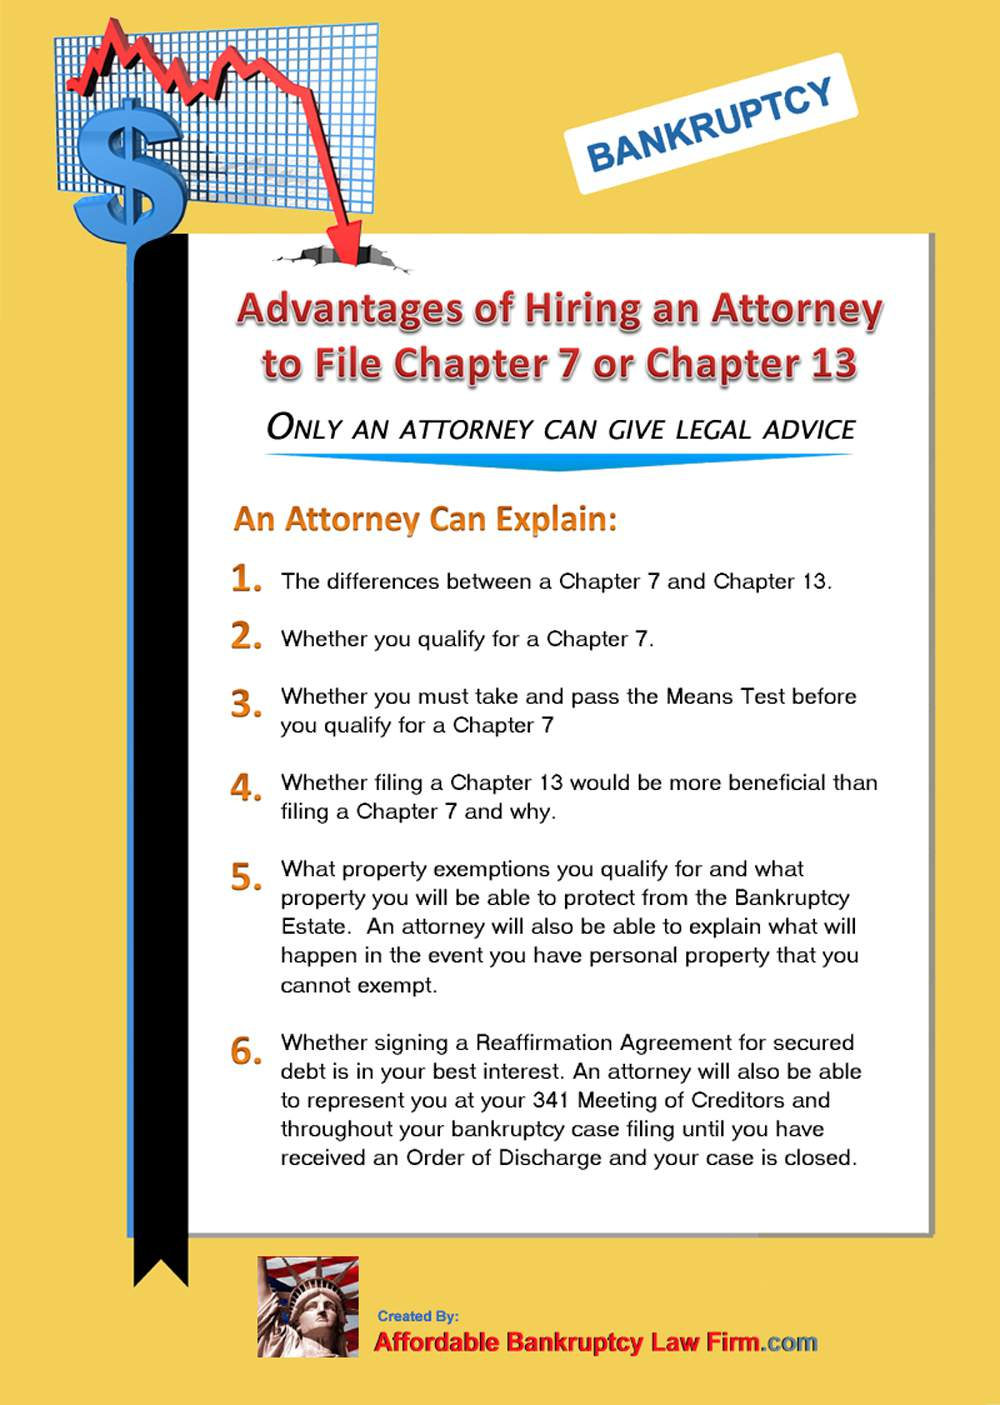 Advantages of Hiring an Attorney to File Chapter 7 or 13